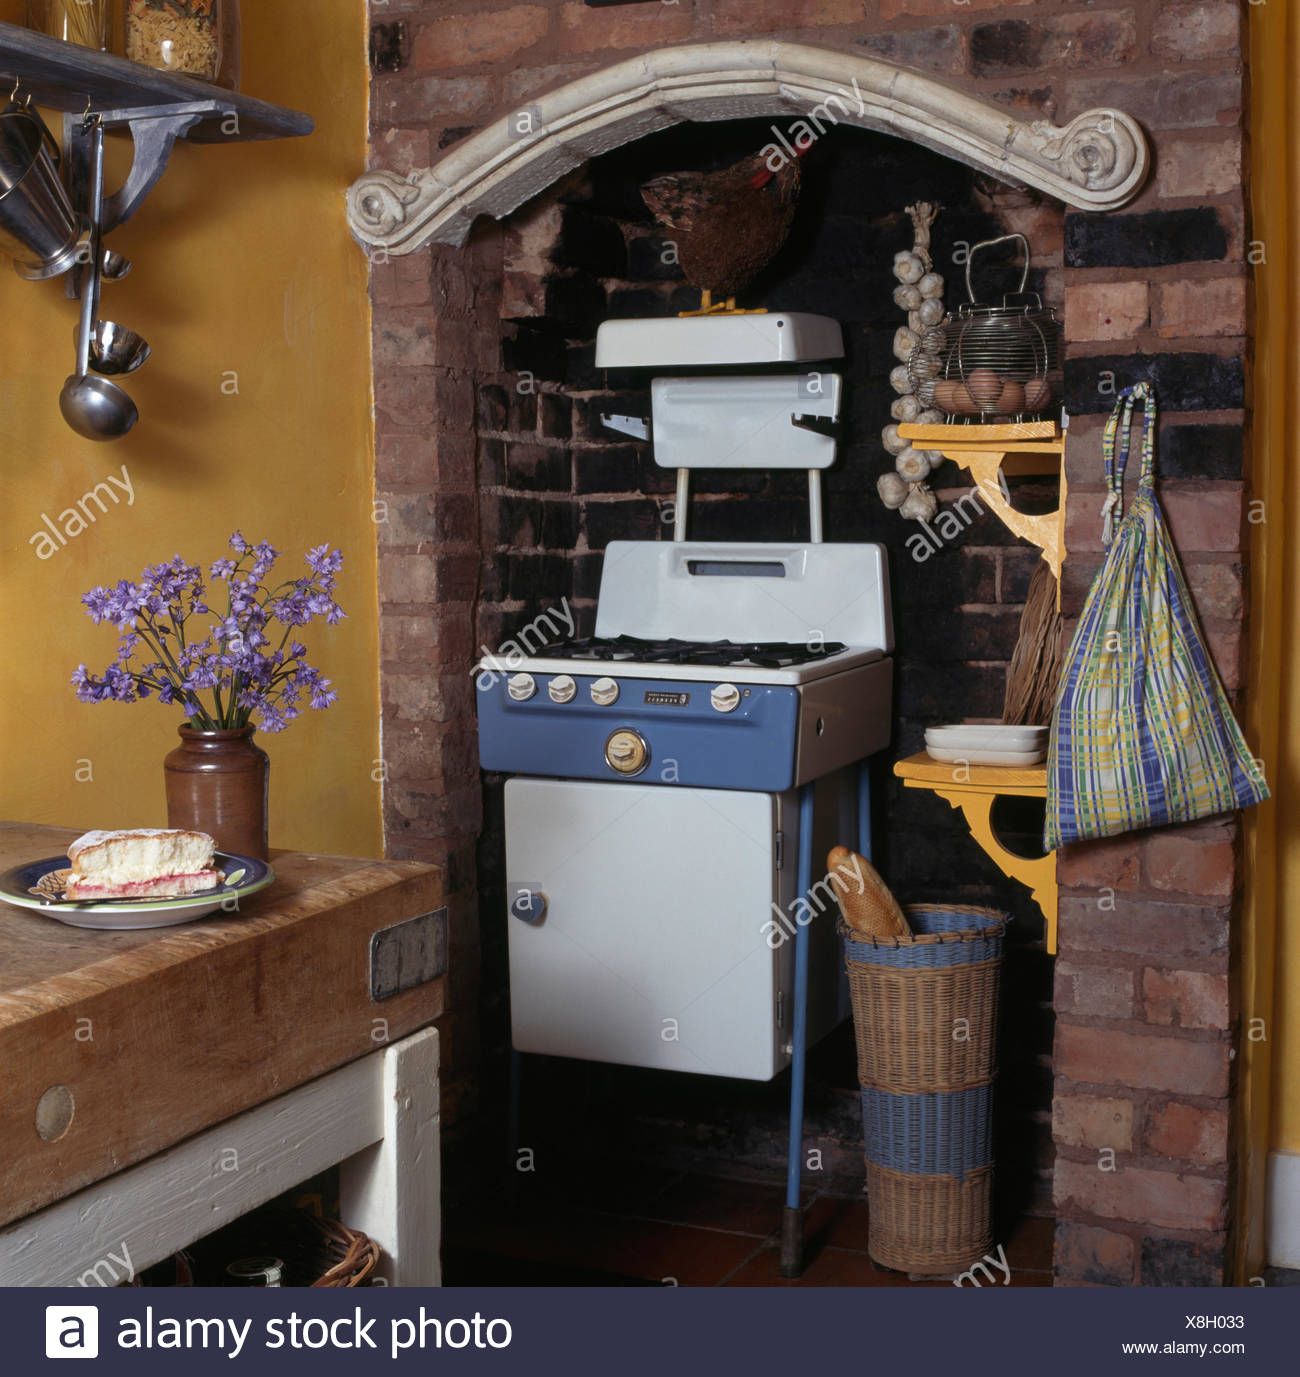 Fifties gas stove in an alcove in a nineties kitchen Stock Photo